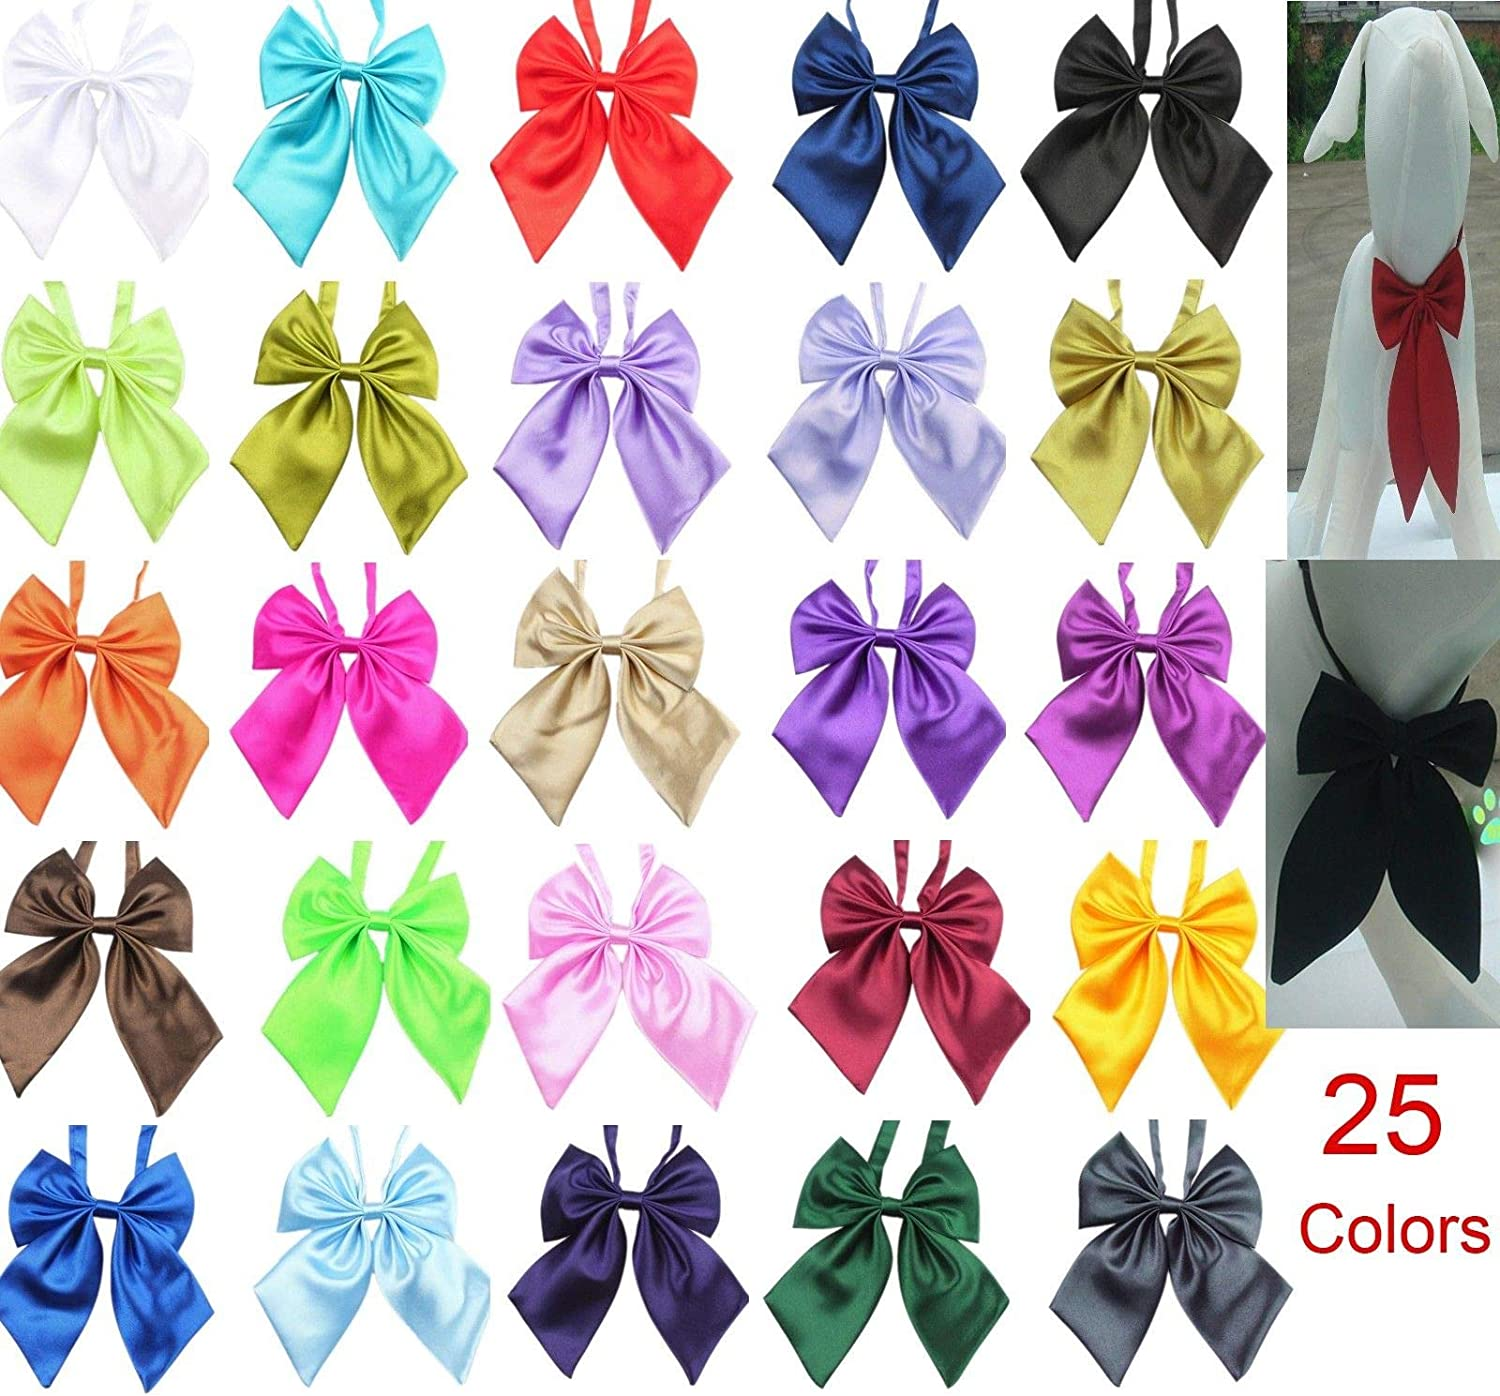 FidgetKute Wholesale 25 colors Polyester Silk Pet Dog Bow Ties Adjustable Pet Dog Neckties Mix color 20pcs